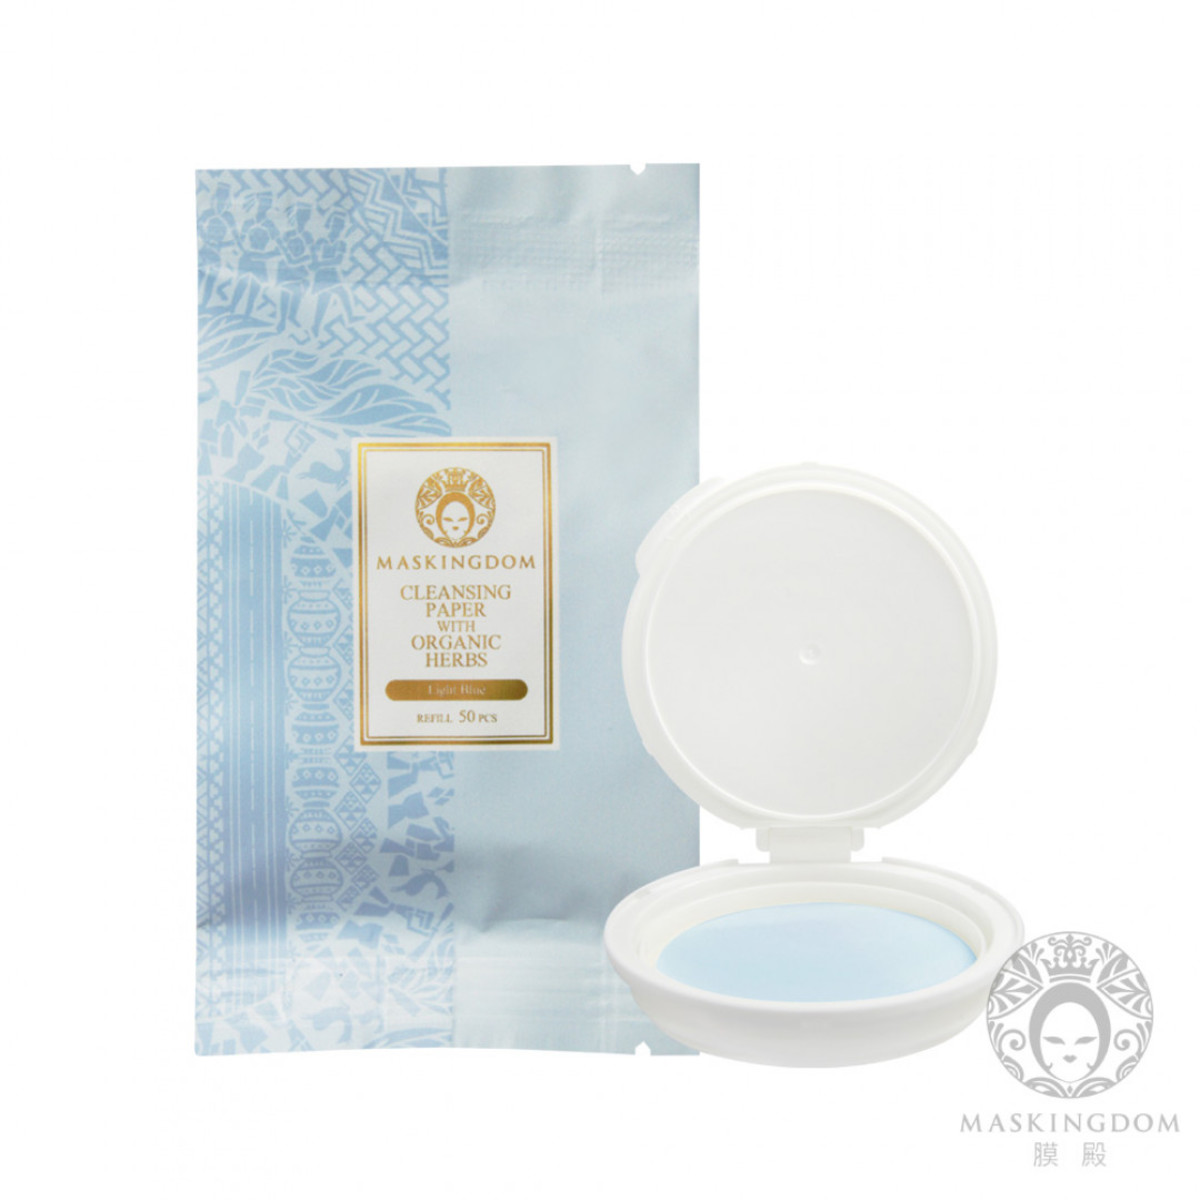 Refill for 3 in 1 Moisture / Cleansing/ Make-up removing Organic Cleaning Flakes Blue Color